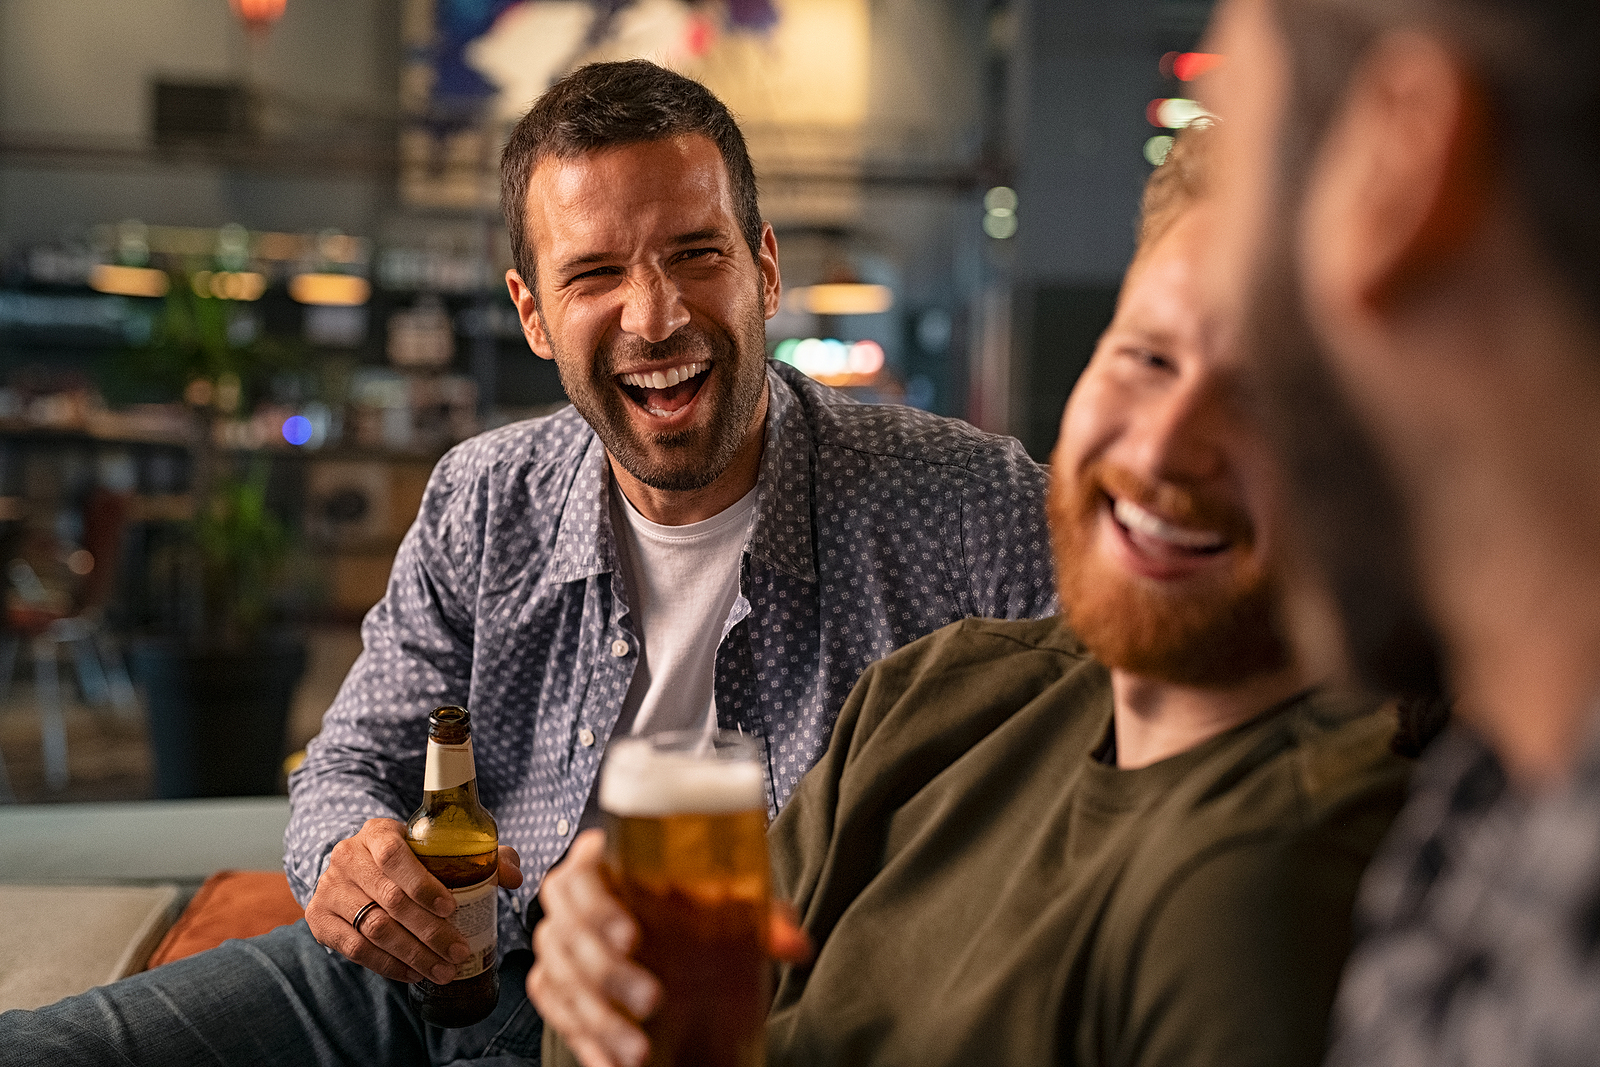 Happy young men drinking beer while having fun in a pub